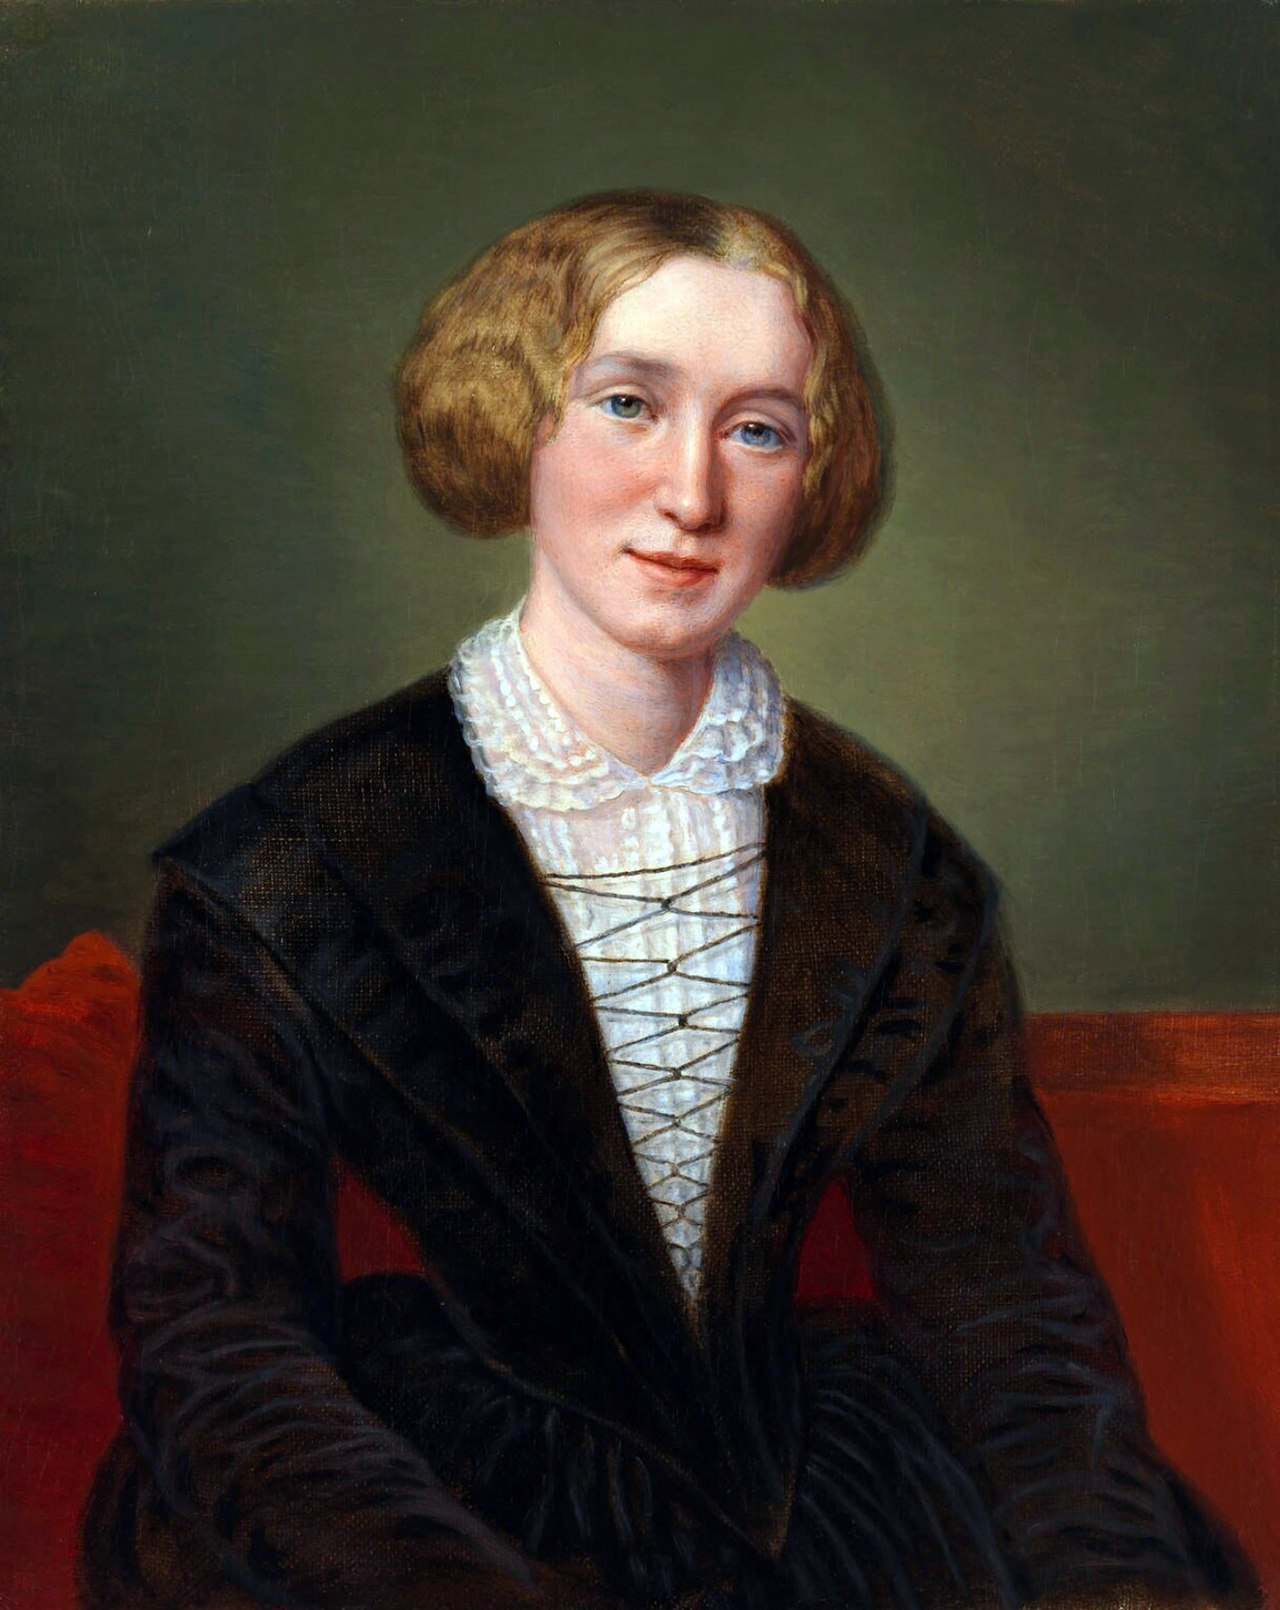 George Eliot, circa 1849